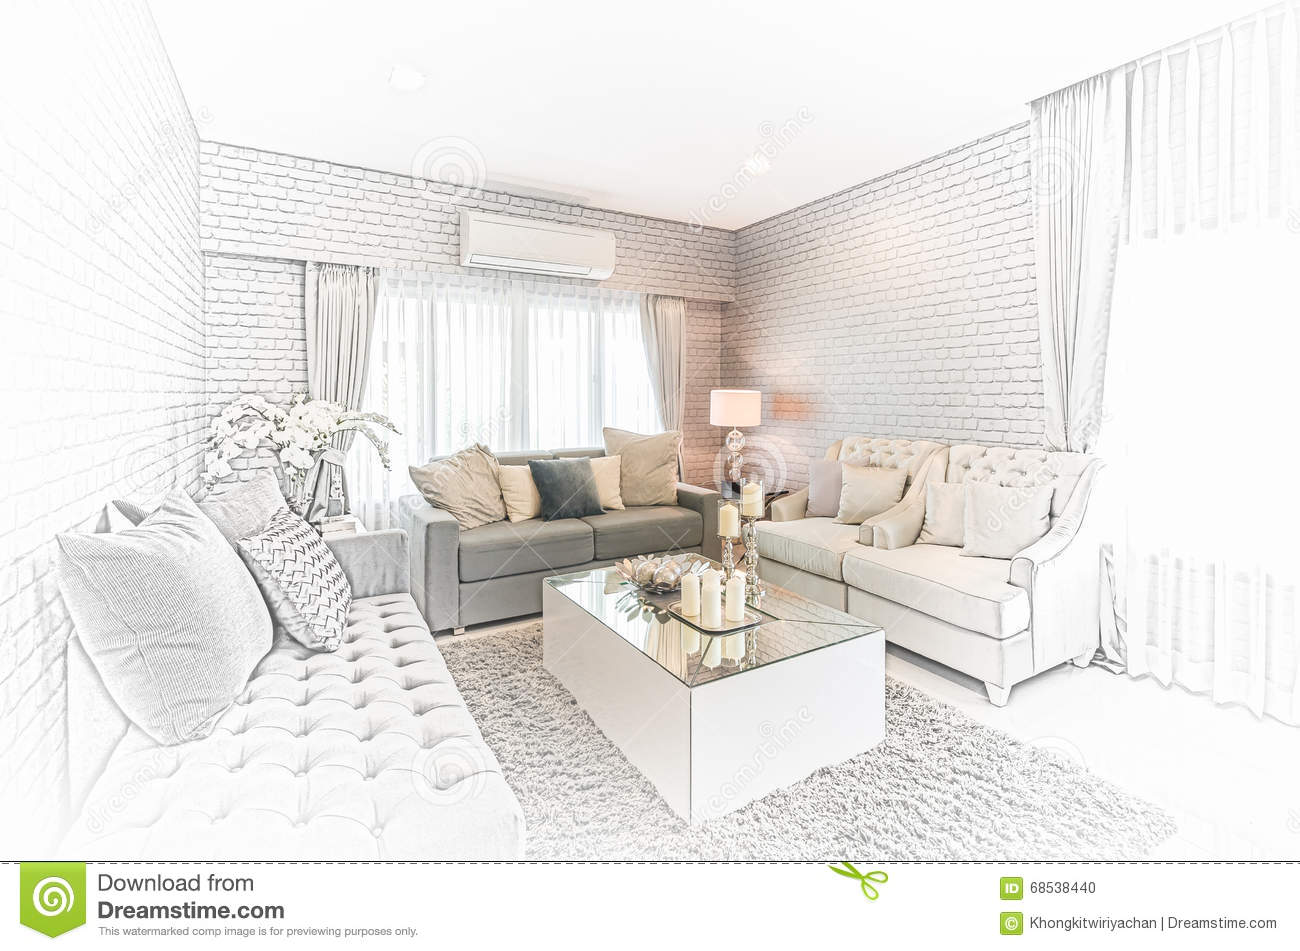 Modern furniture sketches chair sketches - Sketch Design Of Modern Living Room With Modern Chair And Sofa A Stock Photo